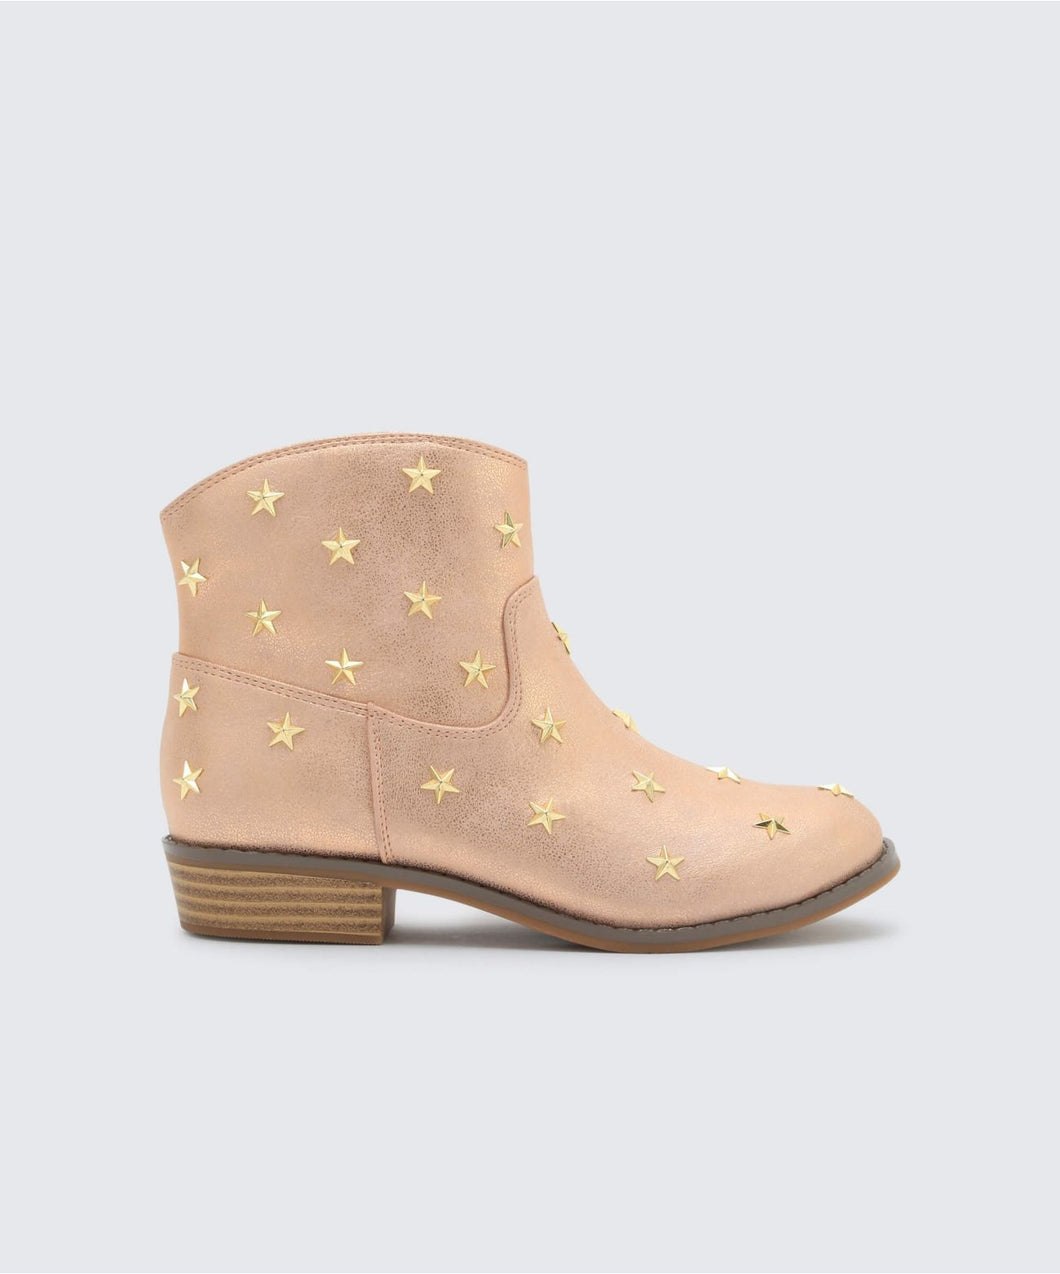 SALO BOOTIES IN ROSE GOLD -   Dolce Vita